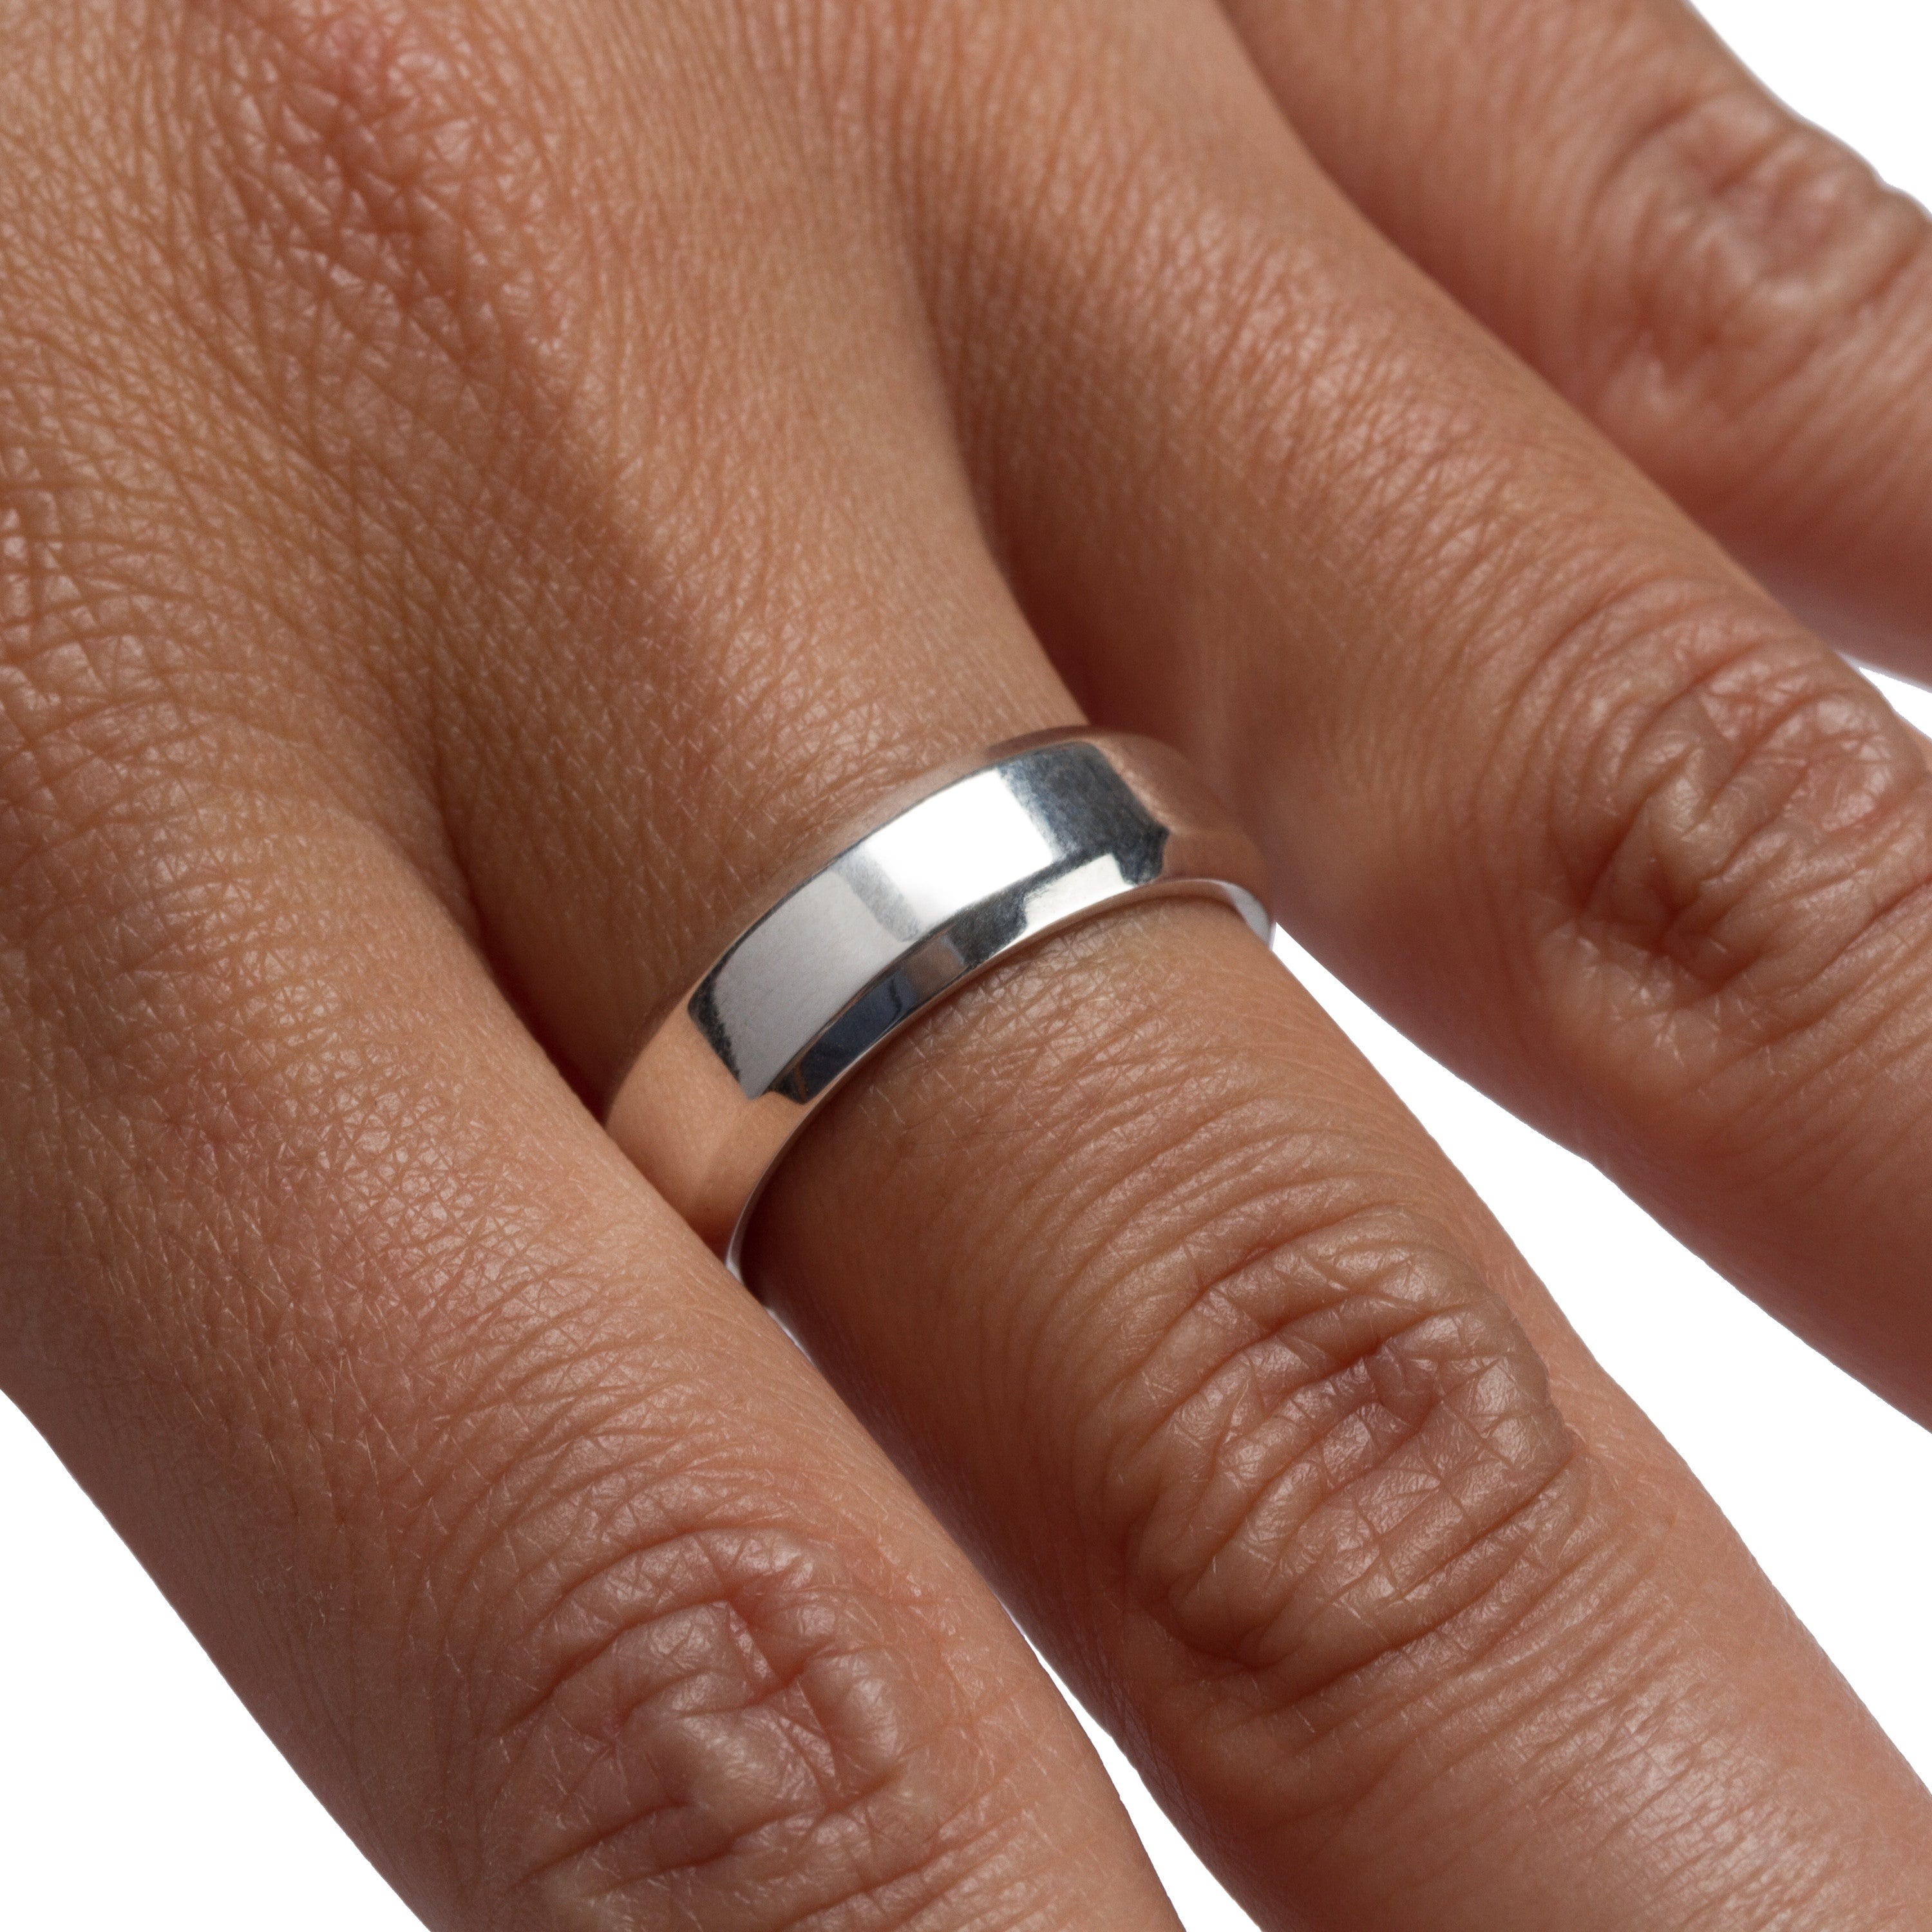 Uni-Ring 925 Sterling Silver Polished Ring on a Woman's Hand